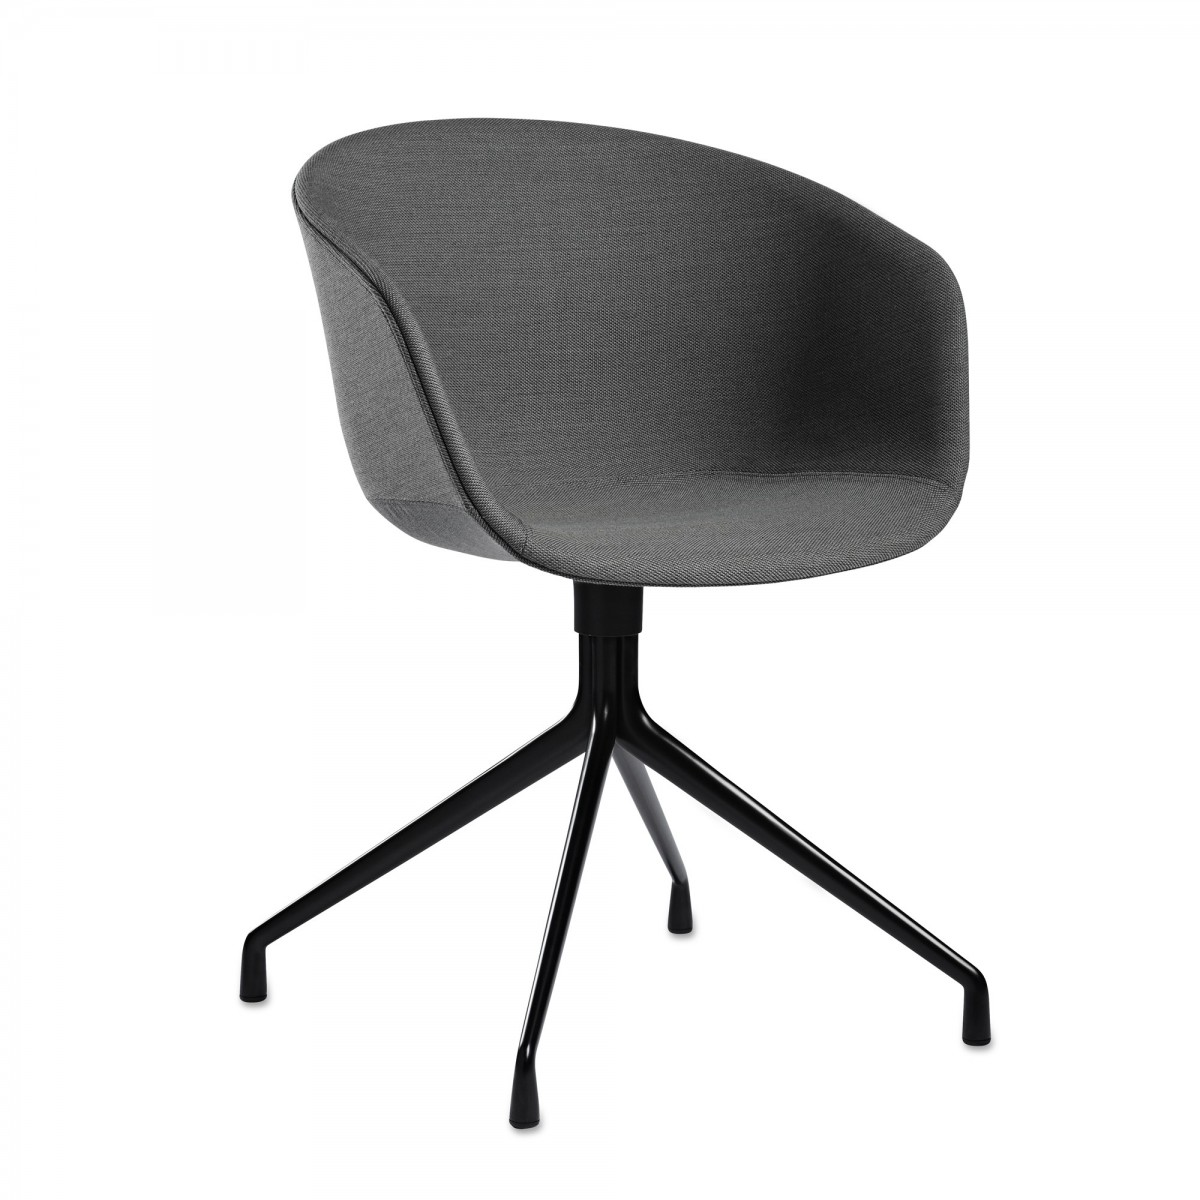 aac21 chair feet in aluminium with polypropylene shell unpholstered hay. Black Bedroom Furniture Sets. Home Design Ideas